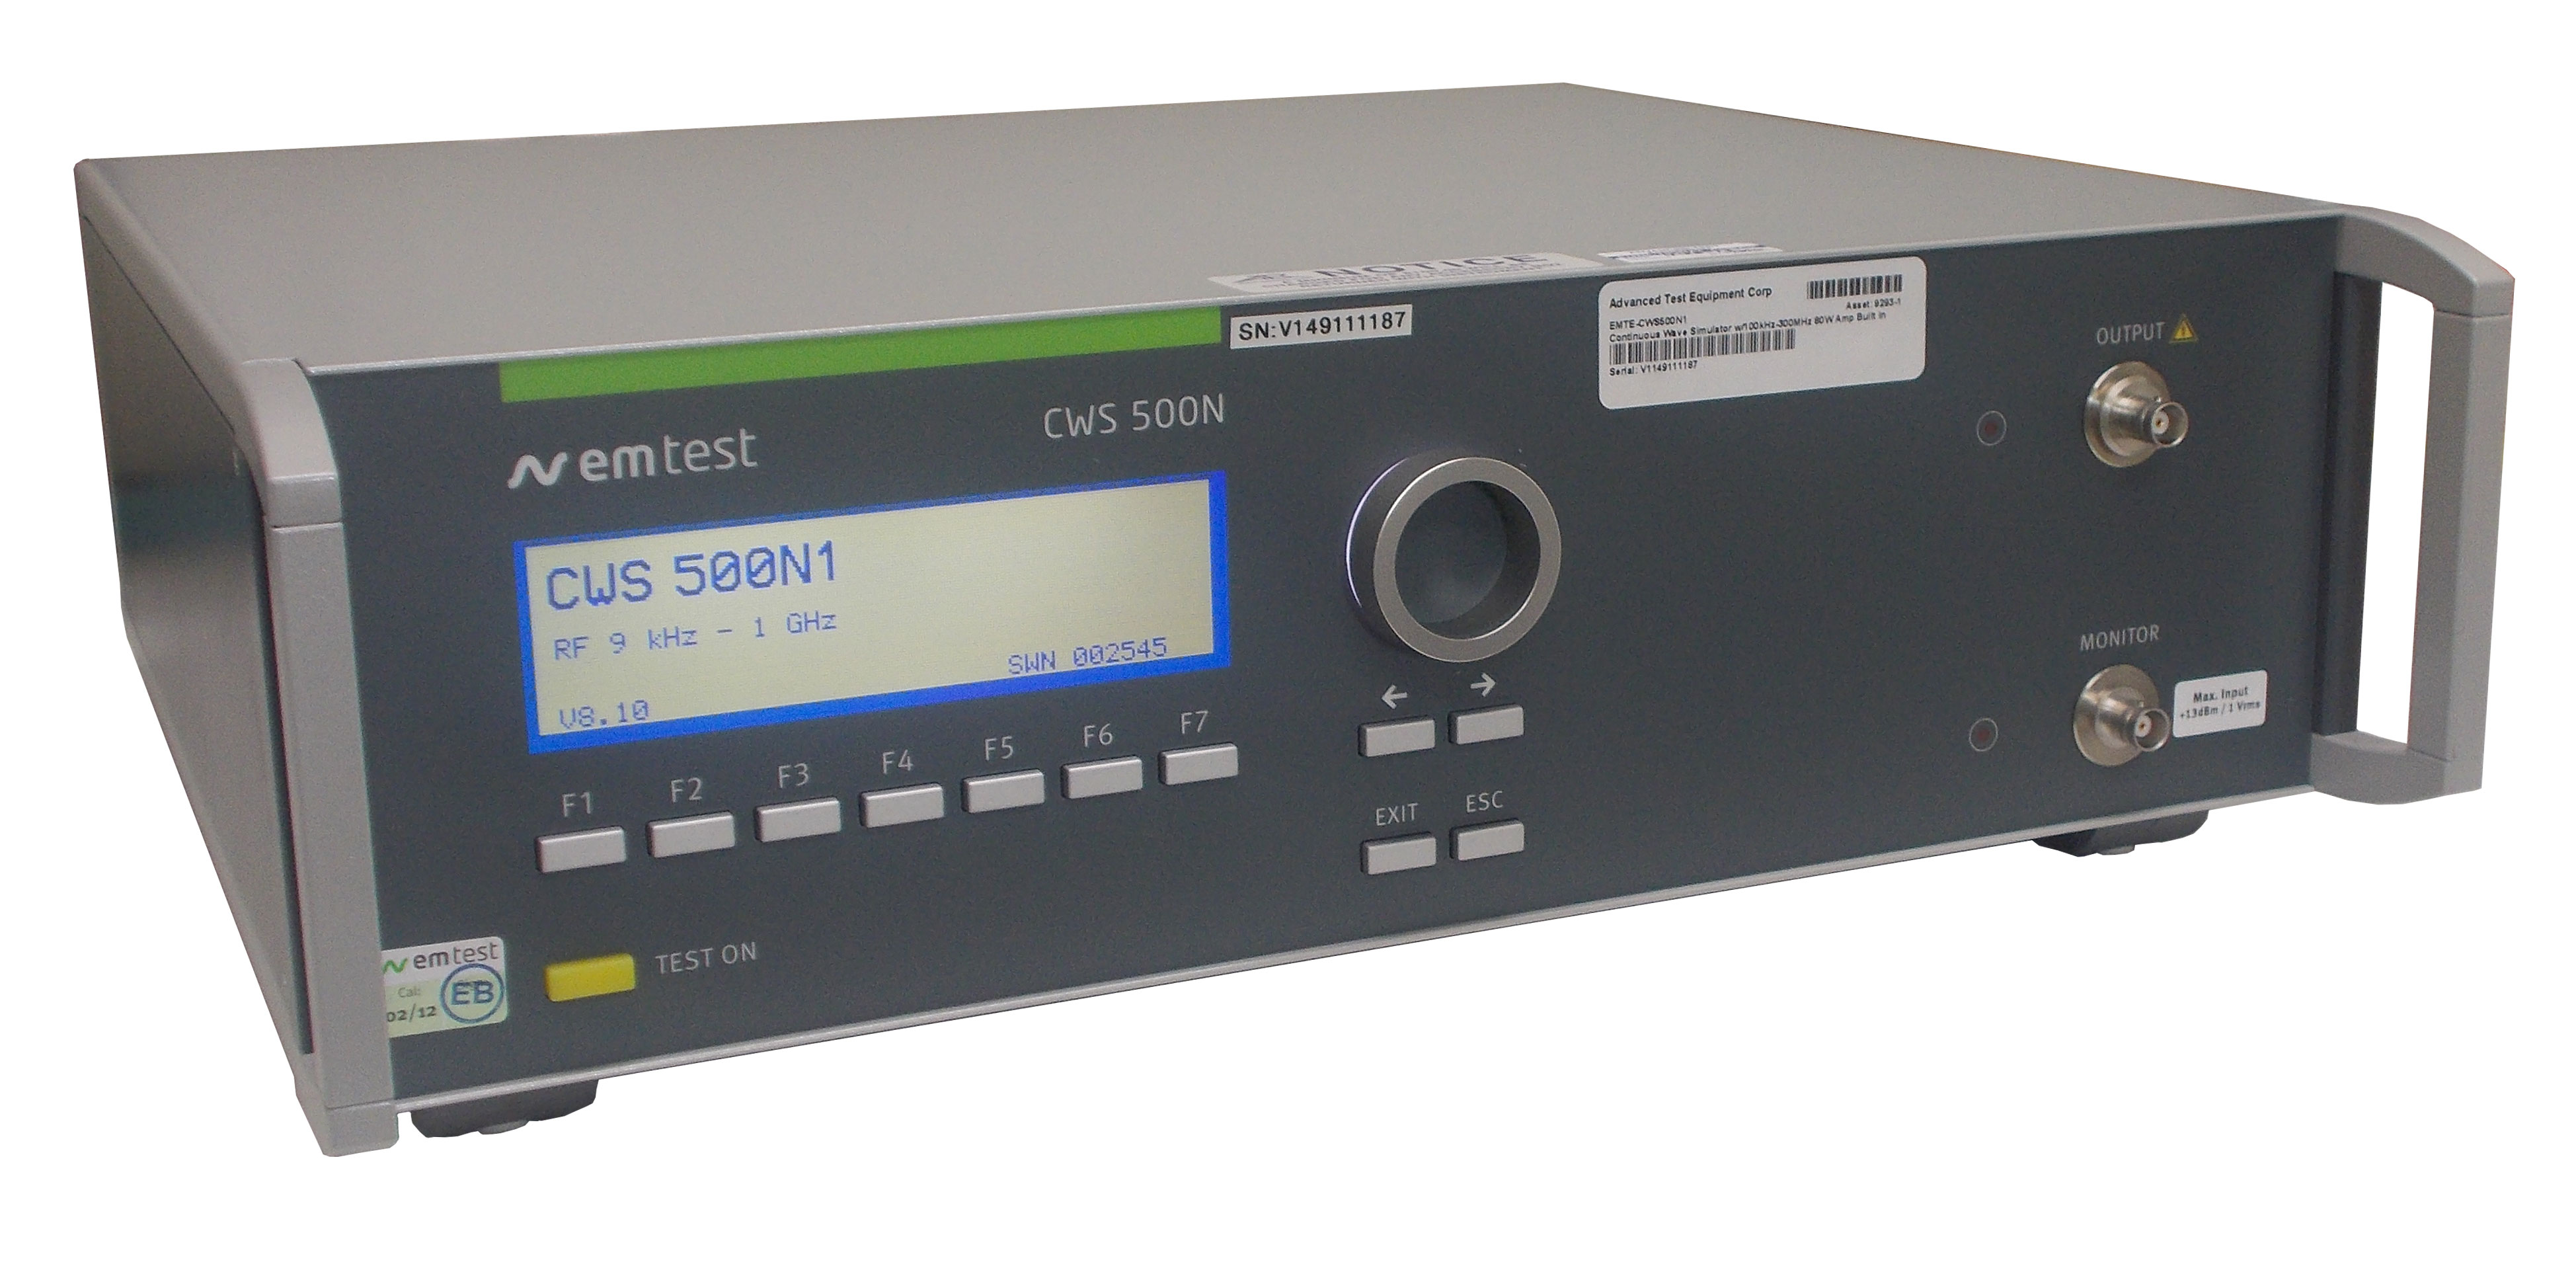 Rent EM Test CWS 500N1 Continuous Wave Simulator for IEC 61000-4-6